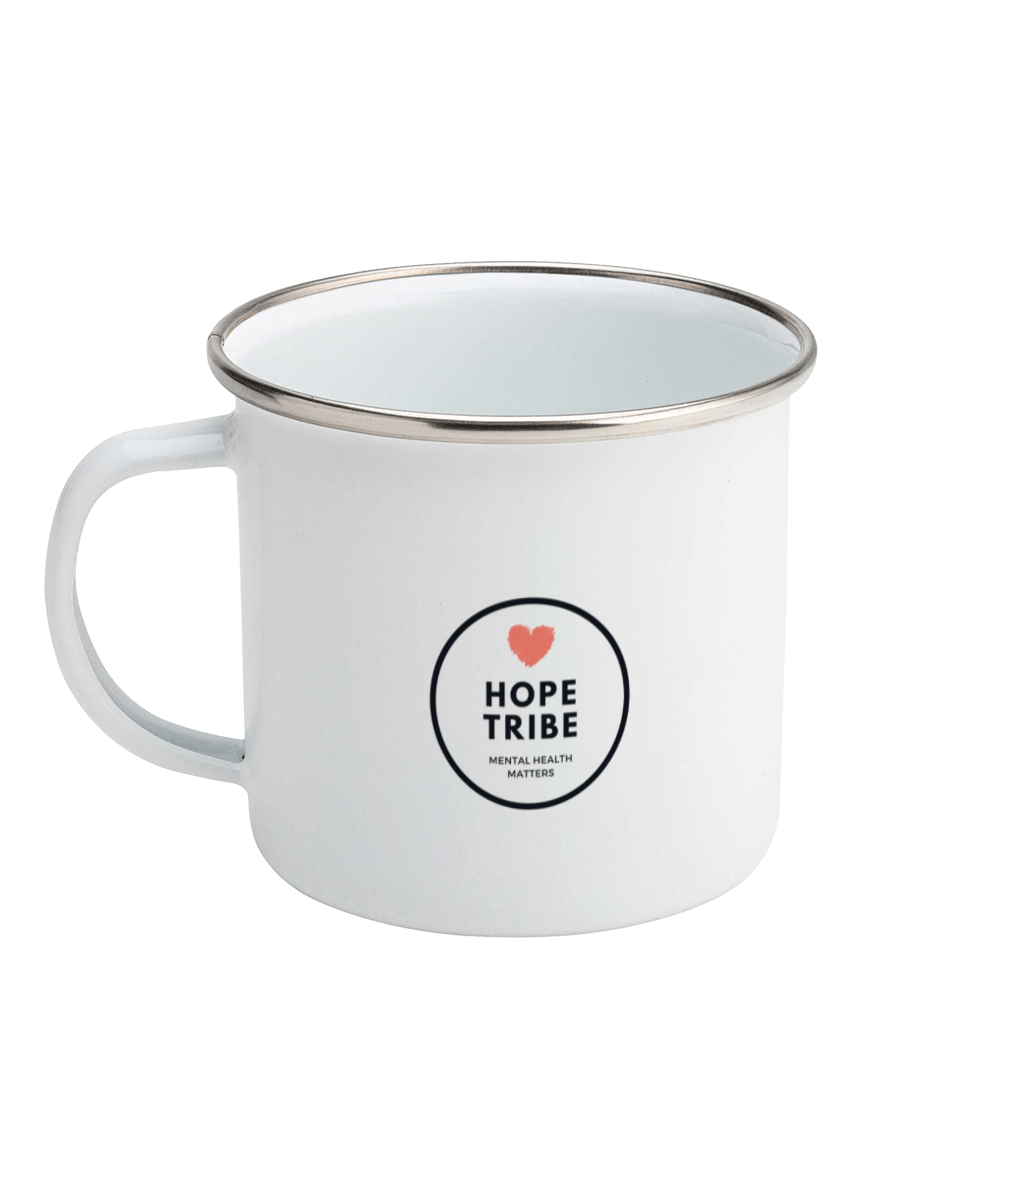 Positivitea Enamel Mug - Hope Tribe Mental Health